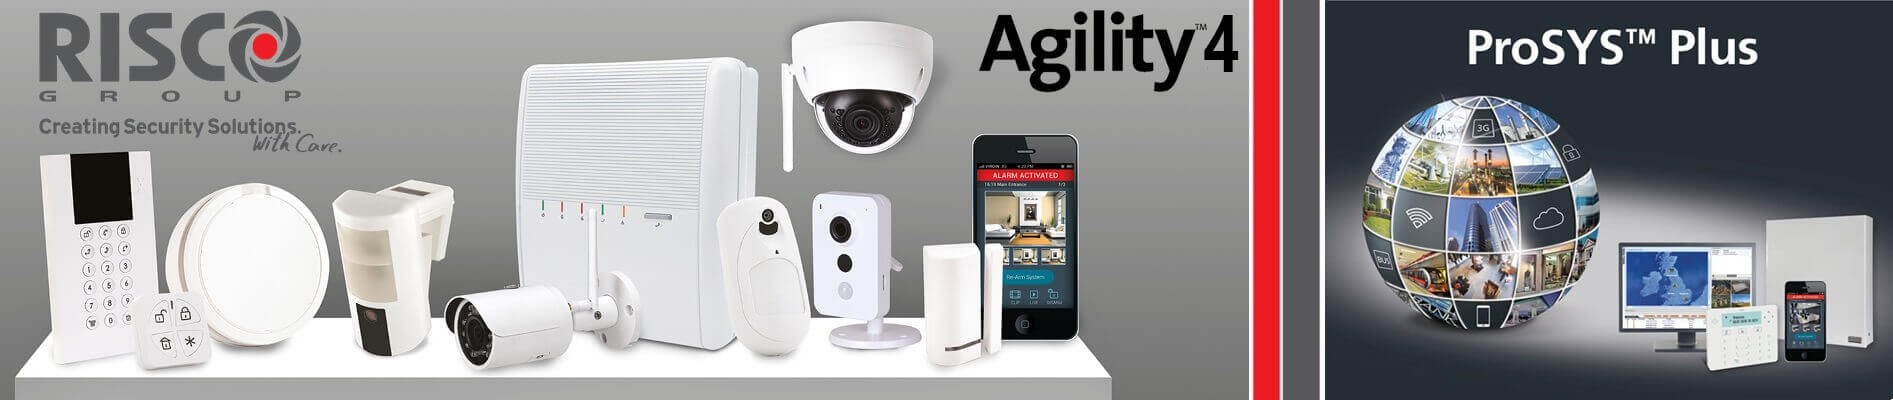 Agilty4-ProSYS-PLus-Banner